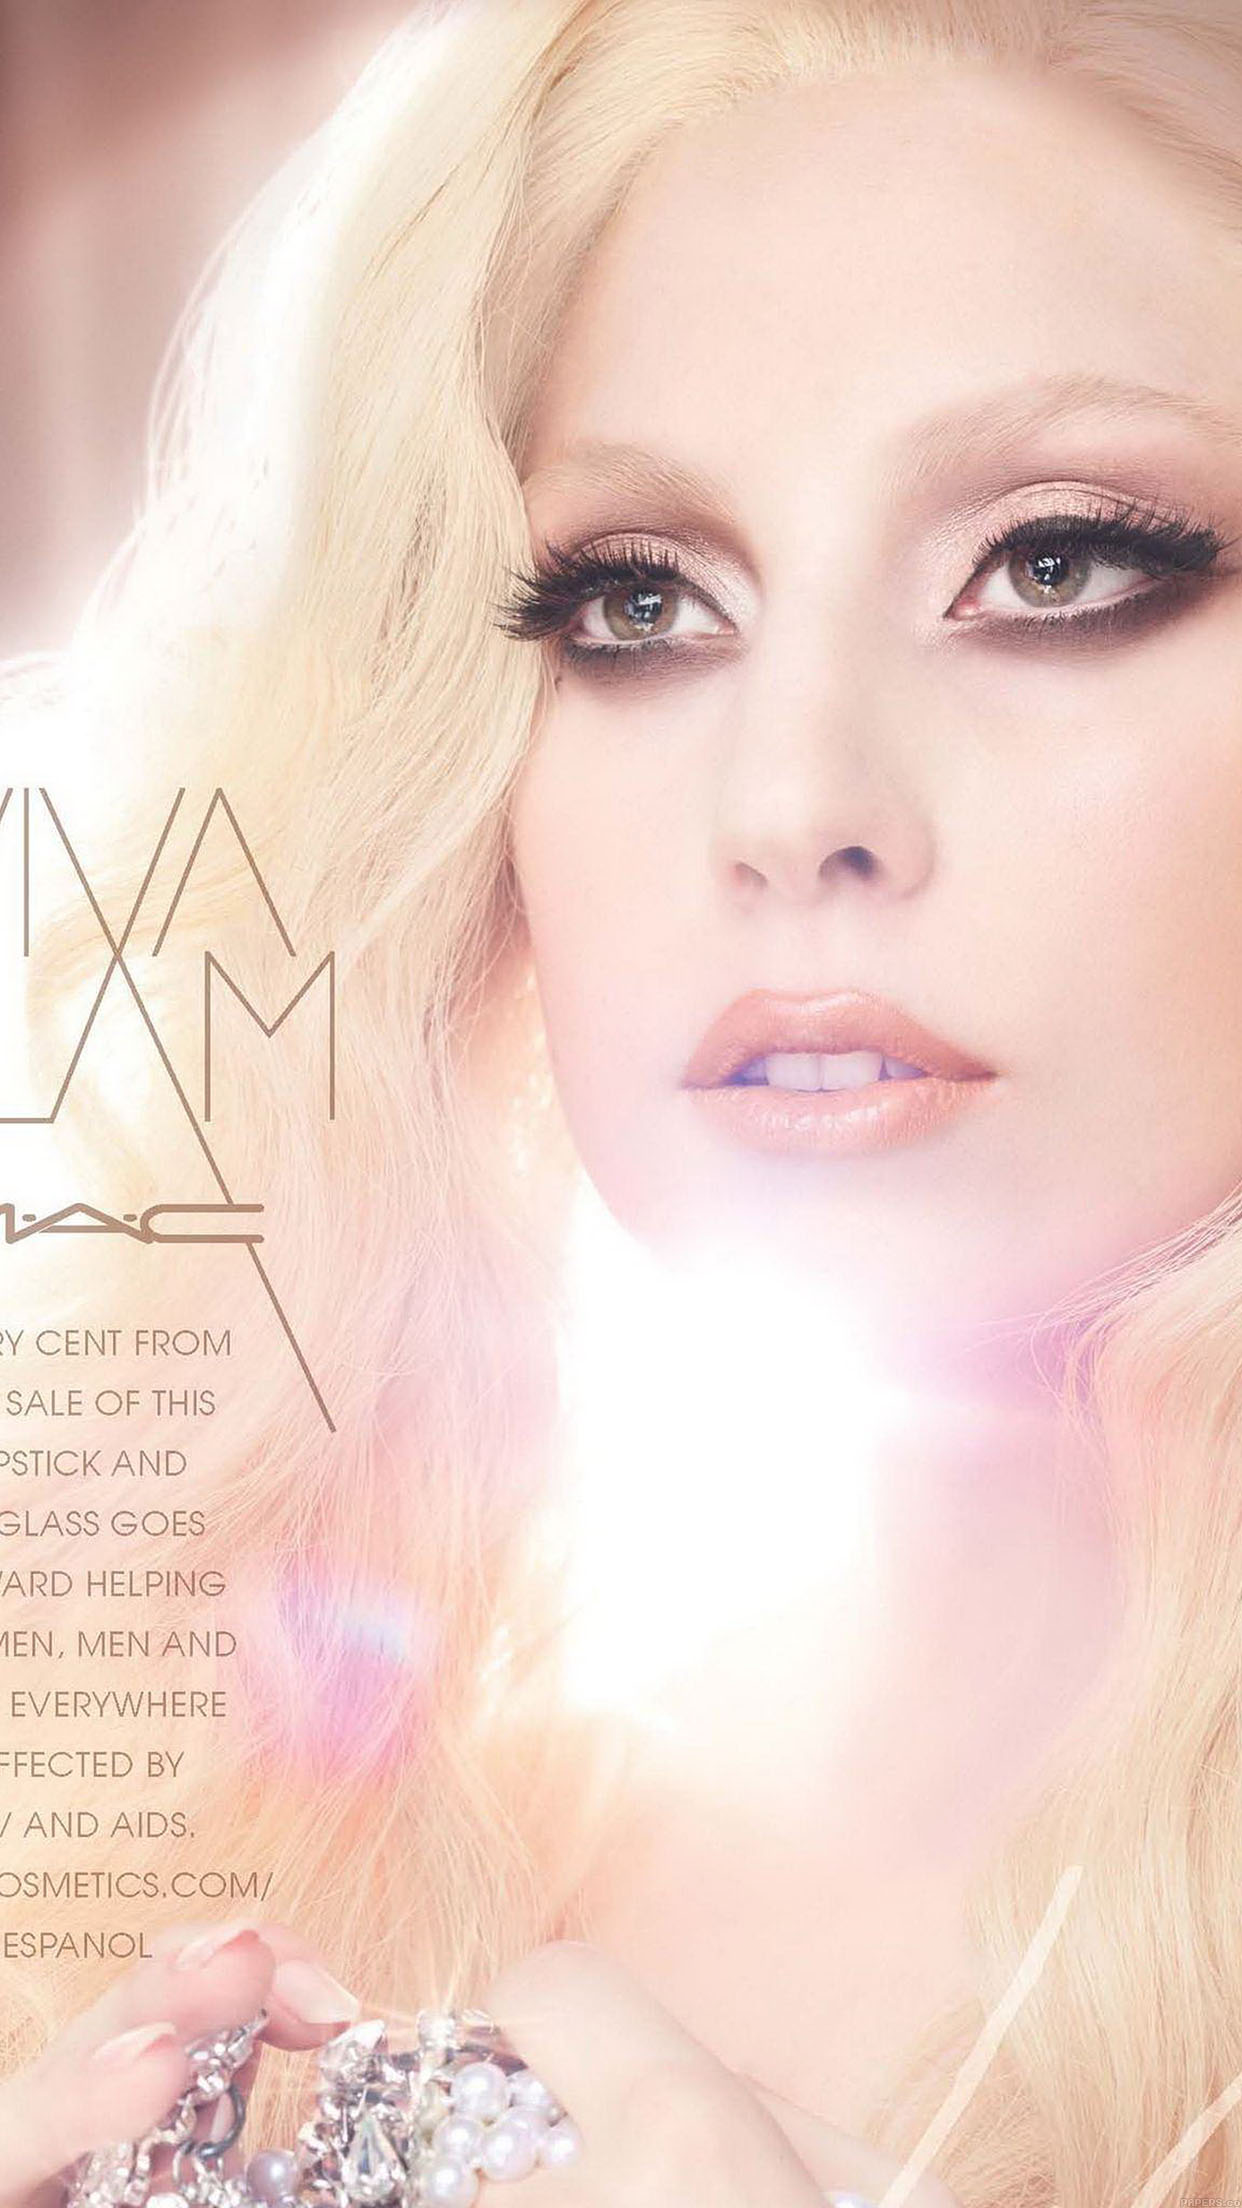 Wallpaper Lady Gaga Mac Face Girl Music Android wallpaper